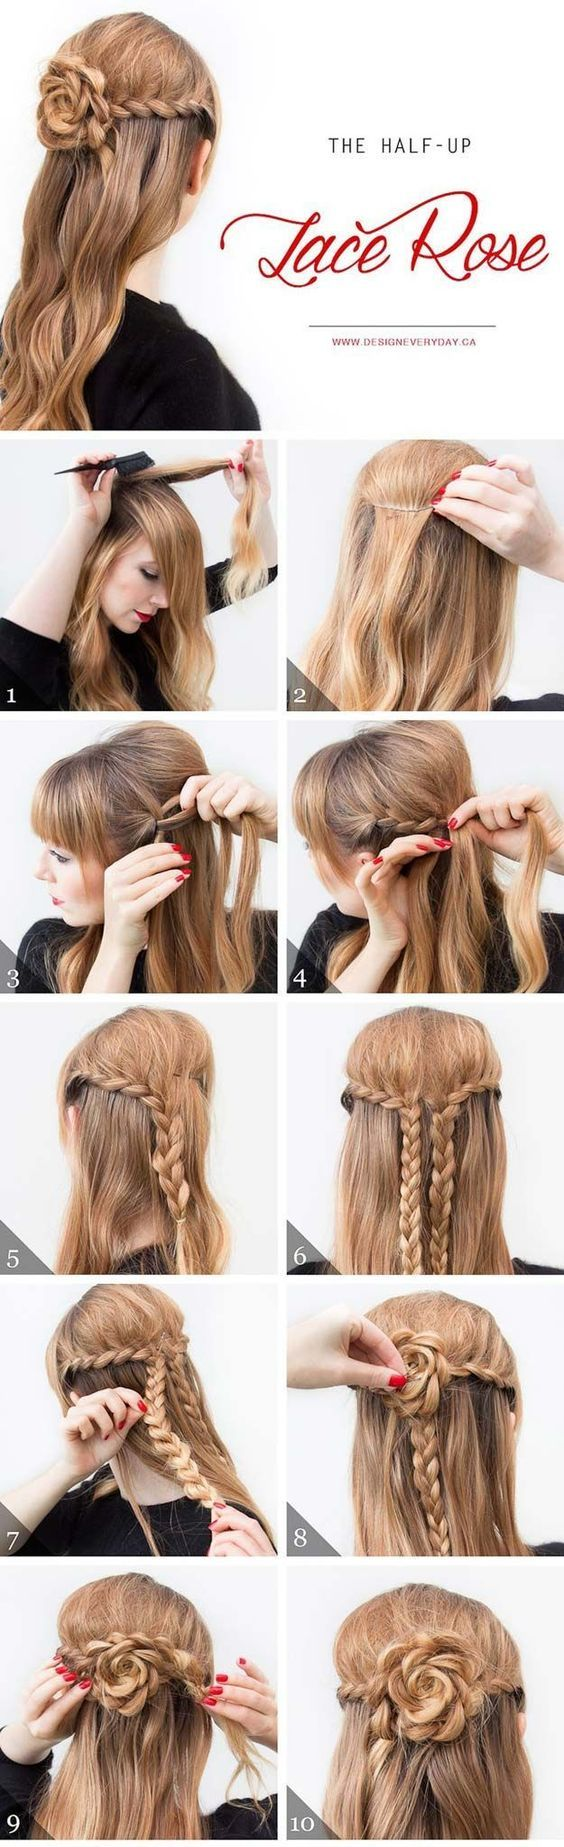 Cool and Easy DIY Hairstyles - The Half Up Lace Rose - Quick and Easy Ideas for ...